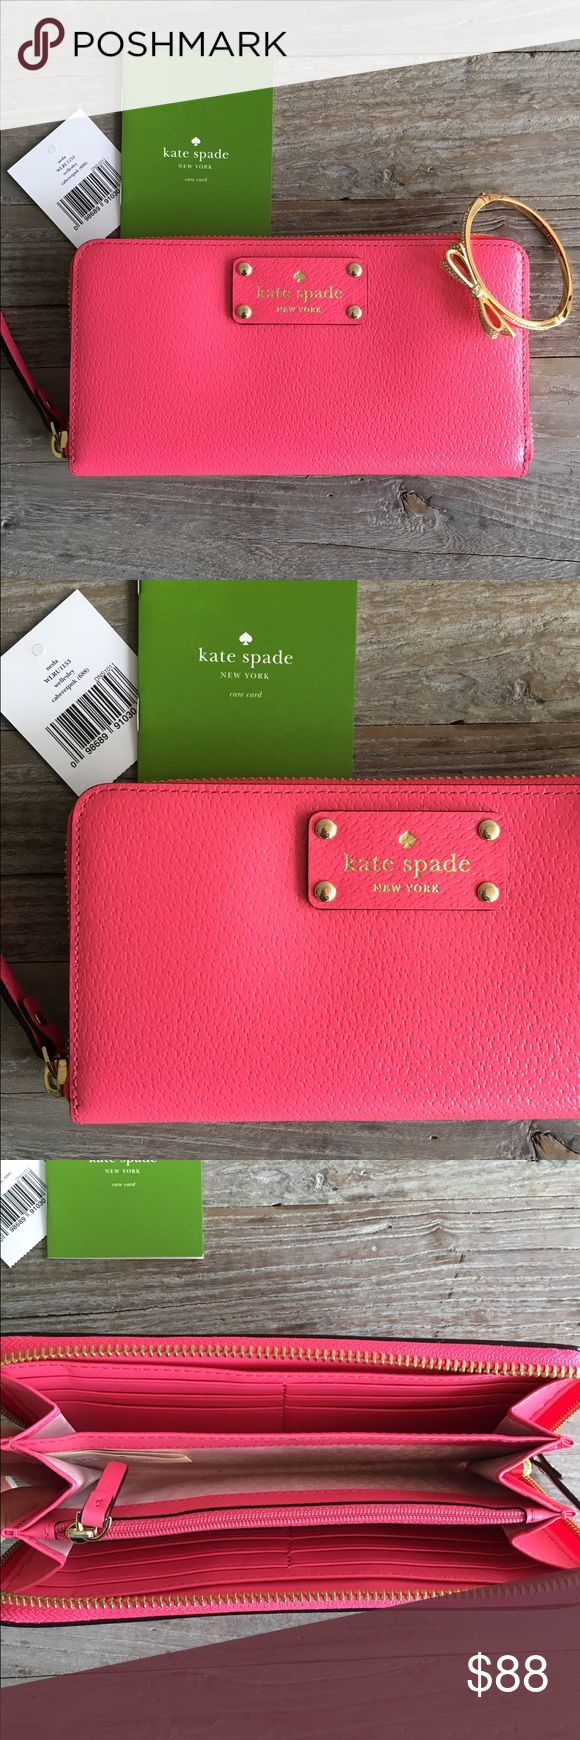 NWT Kate Spade Leather Wallet  Brand new with tag Kate Spade Wallet in cabaret pink! Gorgeous! No trades or negotiating in comments. Bracelet sold separately. All items in my closet are authentic guaranteed. kate spade Bags Wallets